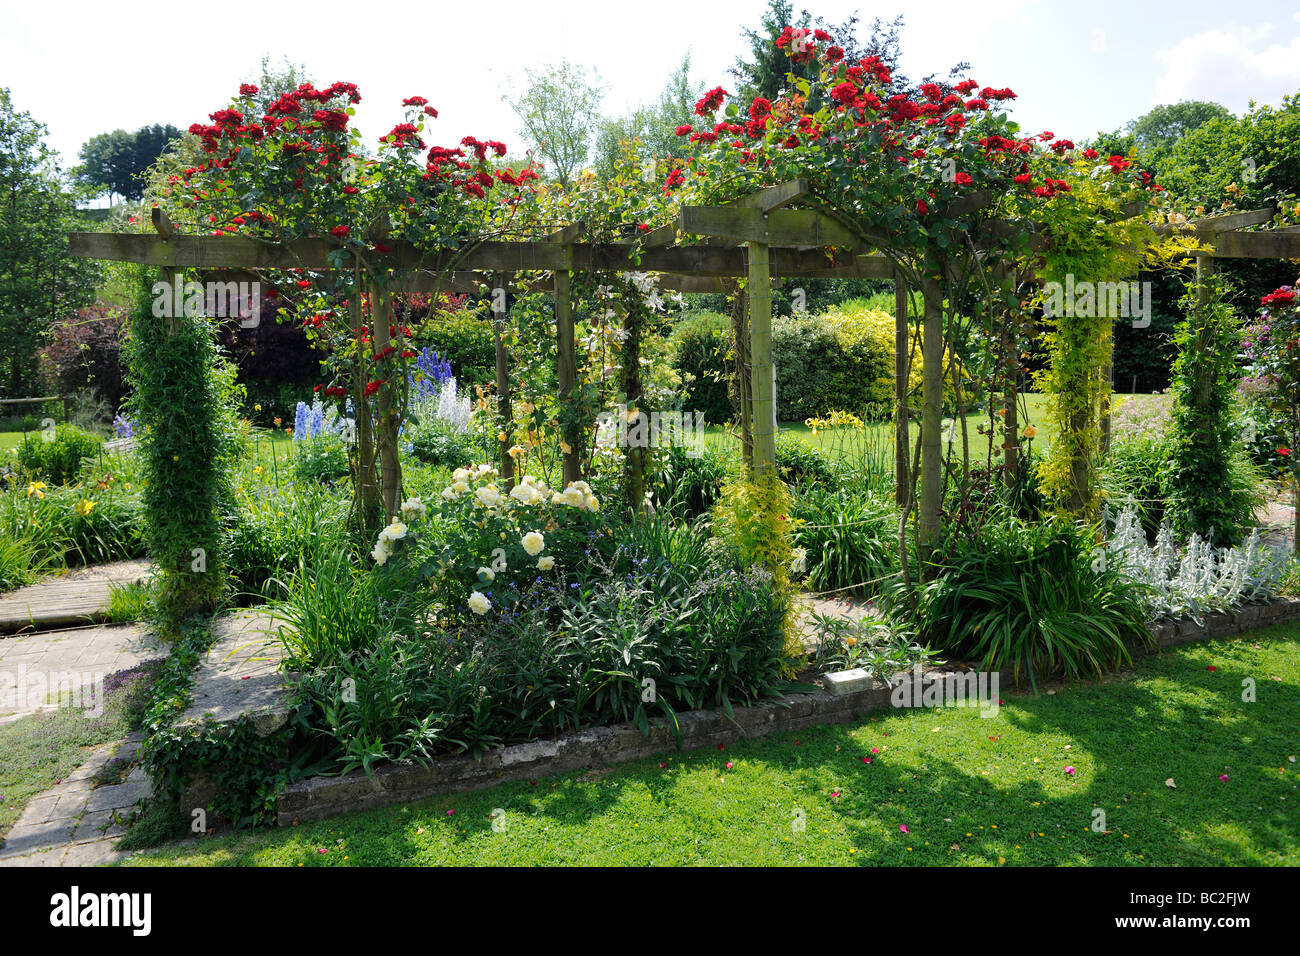 English Garden With Roses On A Pergola, In Somerset   Stock Image